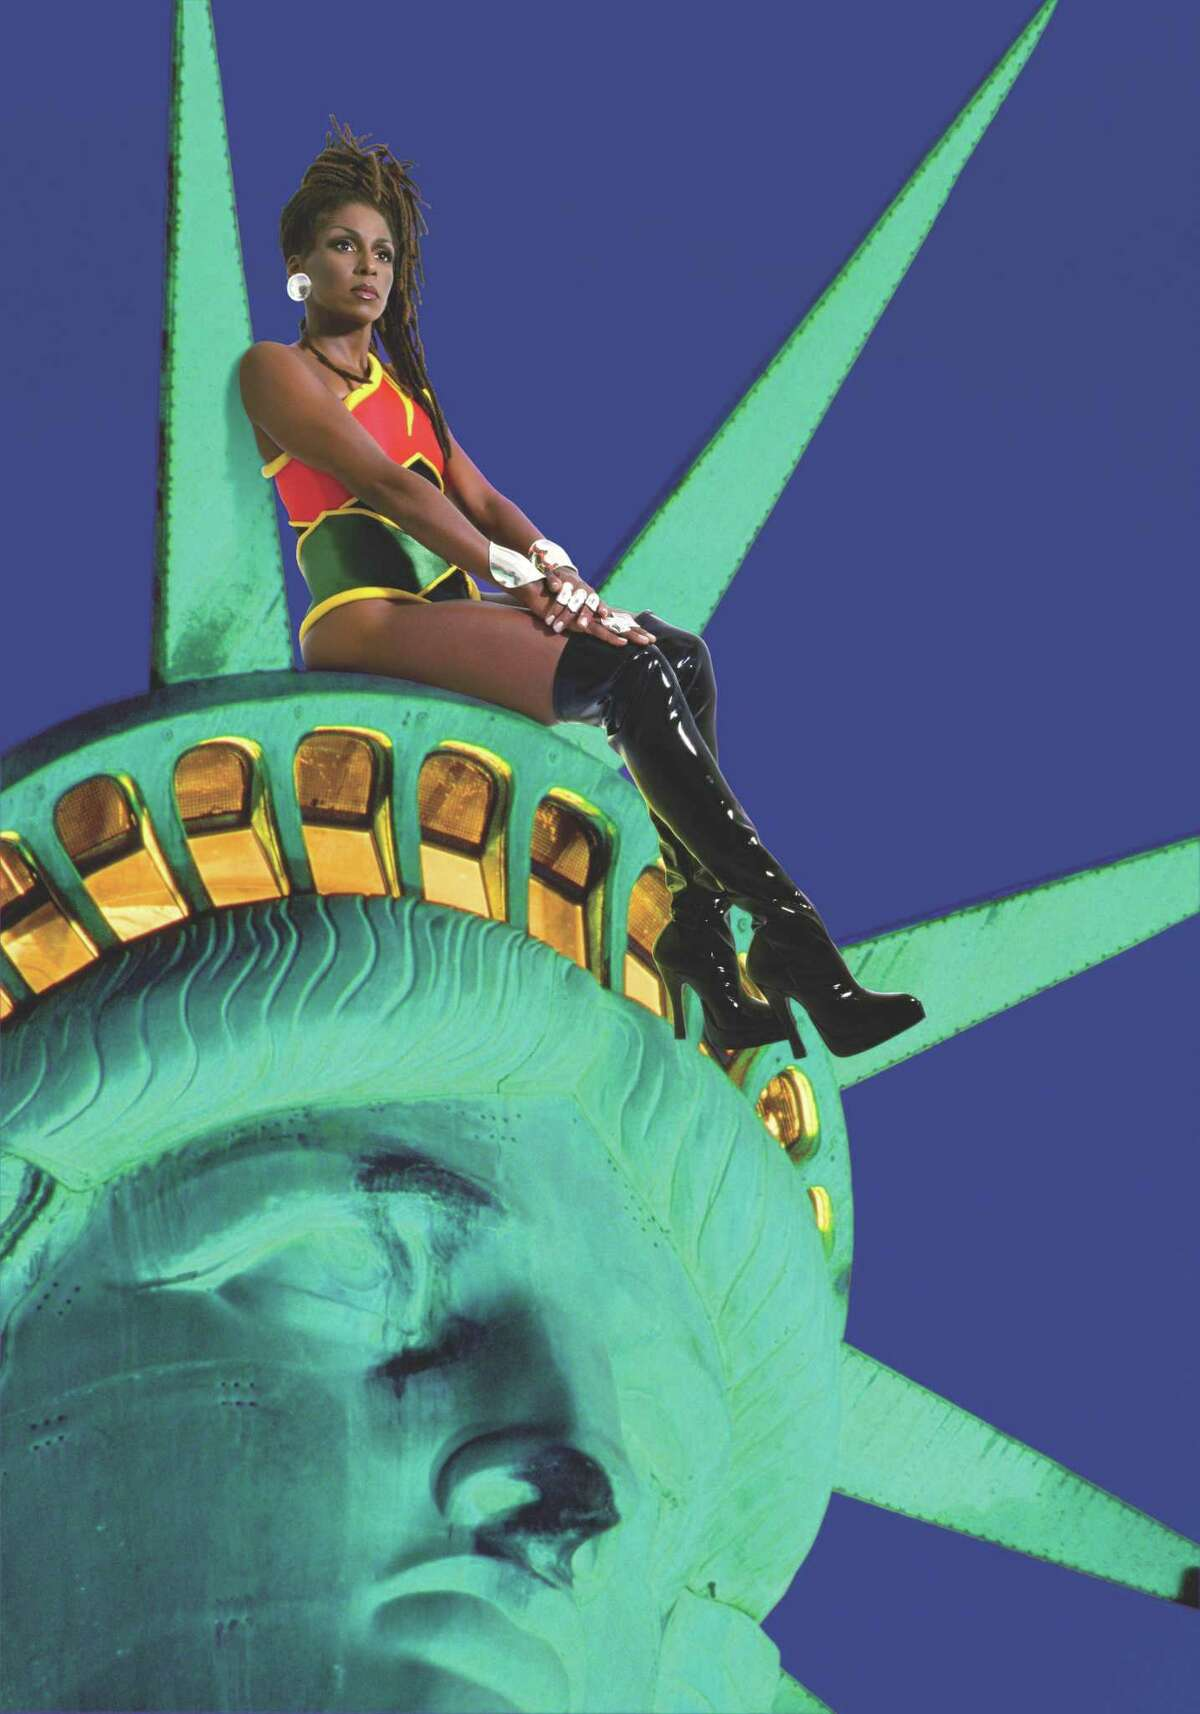 """Renée Cox' """"Chillin' with Liberty,"""" a 1998 Cibachrome print, is one of two images from Cox' Rajé series in which she depicts a superhero of her own devising included in """"Men of Steel, Women of Wonder,"""" the big summer show at the San Antonio Museum of Art."""